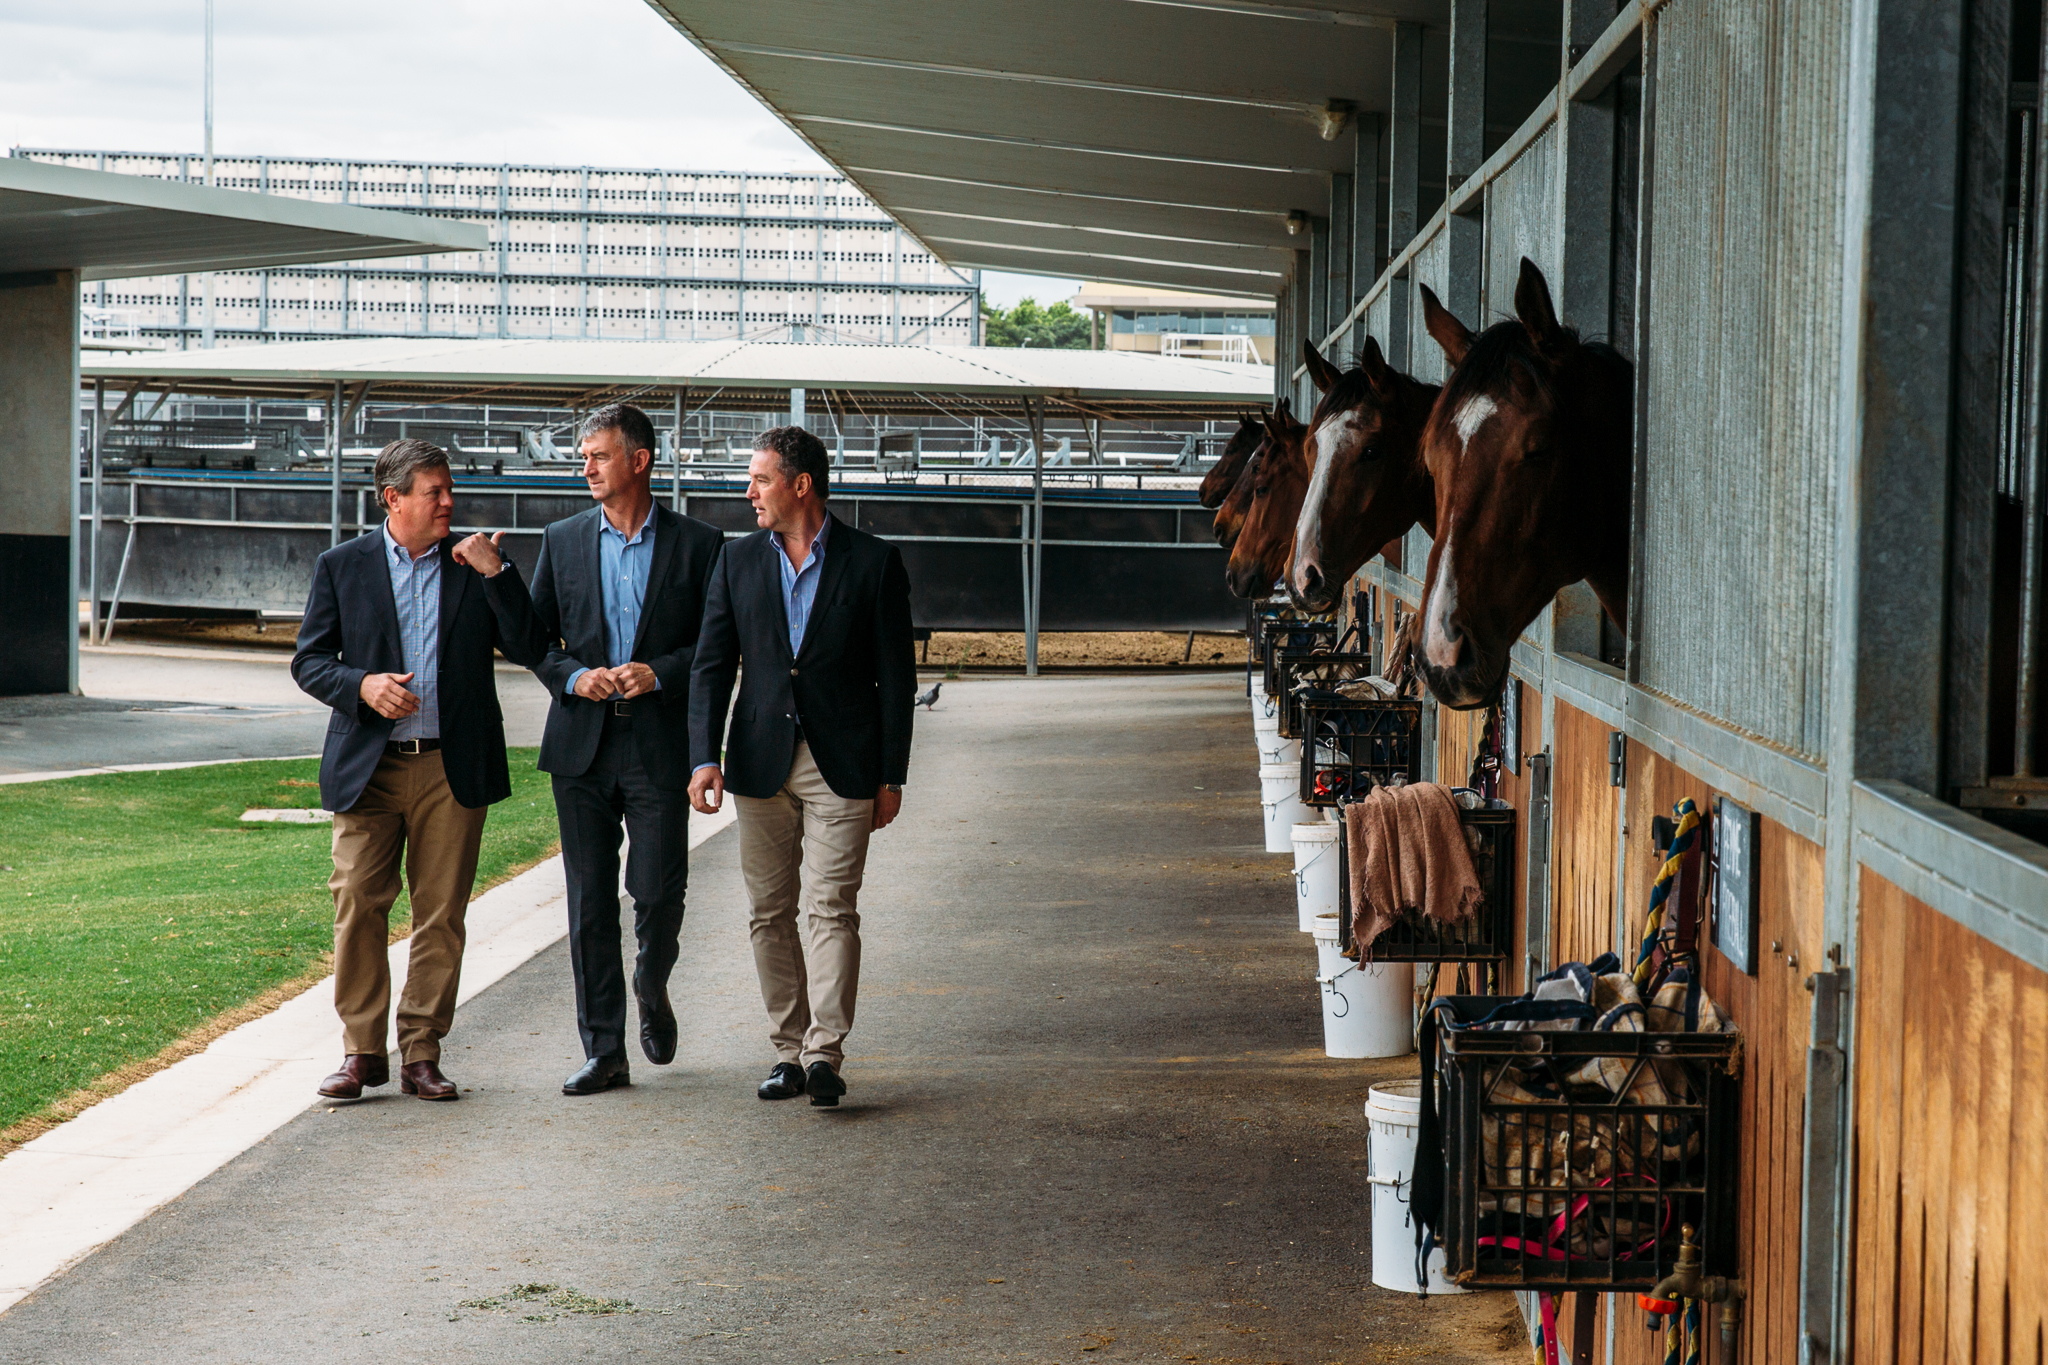 With trainer Rob Heathcote, Tim Mander MP and Tim Nicholls MP at Eagle Farm